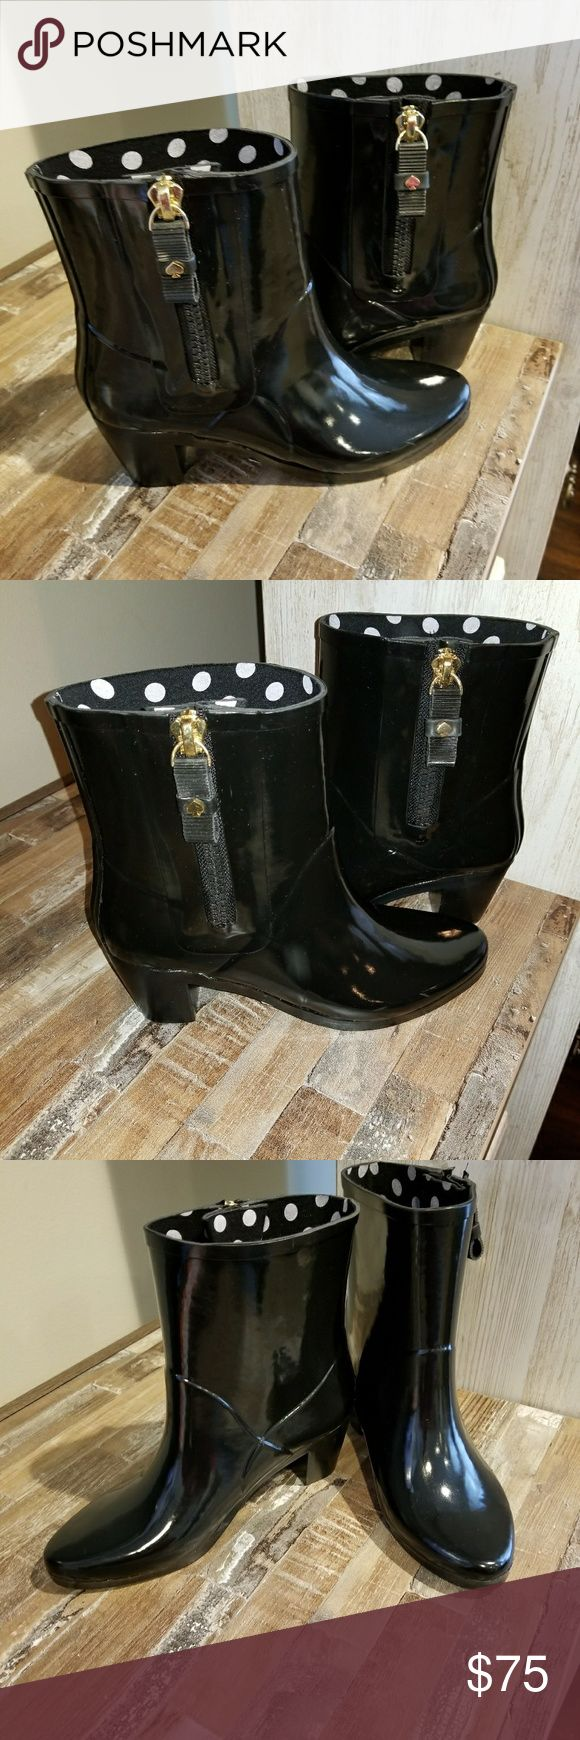 Kate Spade  Boots All Black with a Heel. No box. OFFERS WELCOM kate spade Shoes Winter & Rain Boots